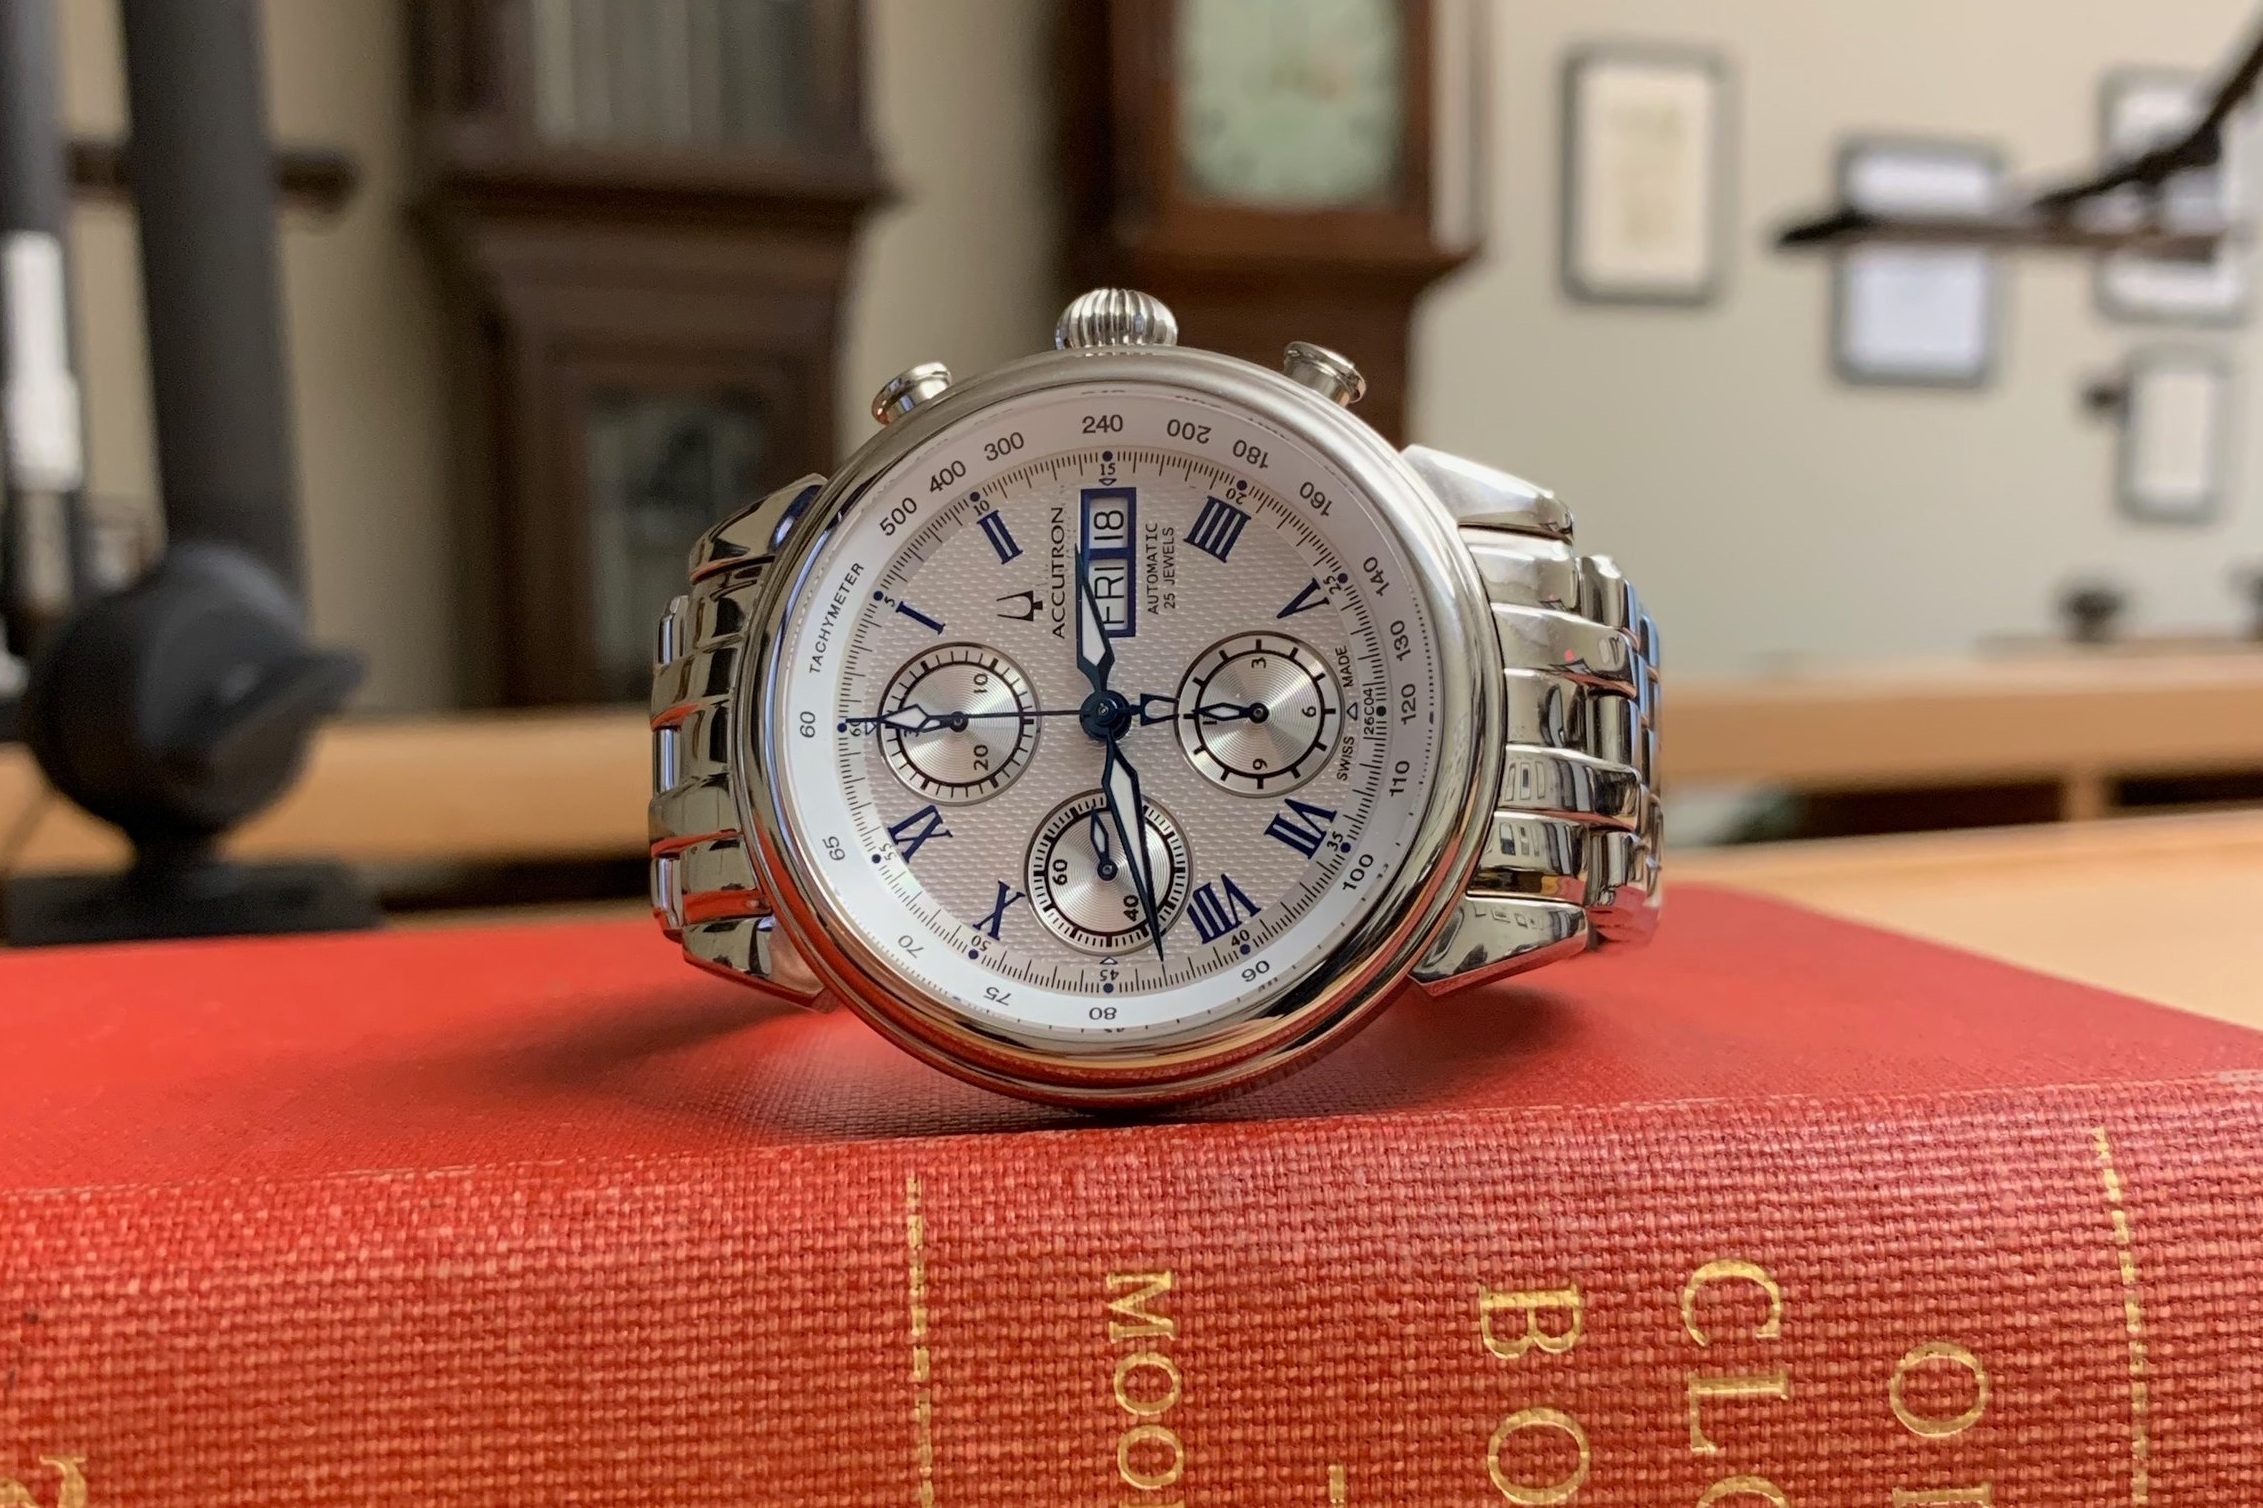 Lot 5 - Bulova Accutron Watch, Circa 2010  Beautiful chronograph in great condition. Donated by Ed Hydeman, HSNY's Executive Director.  Estimate: $500 - $1,000